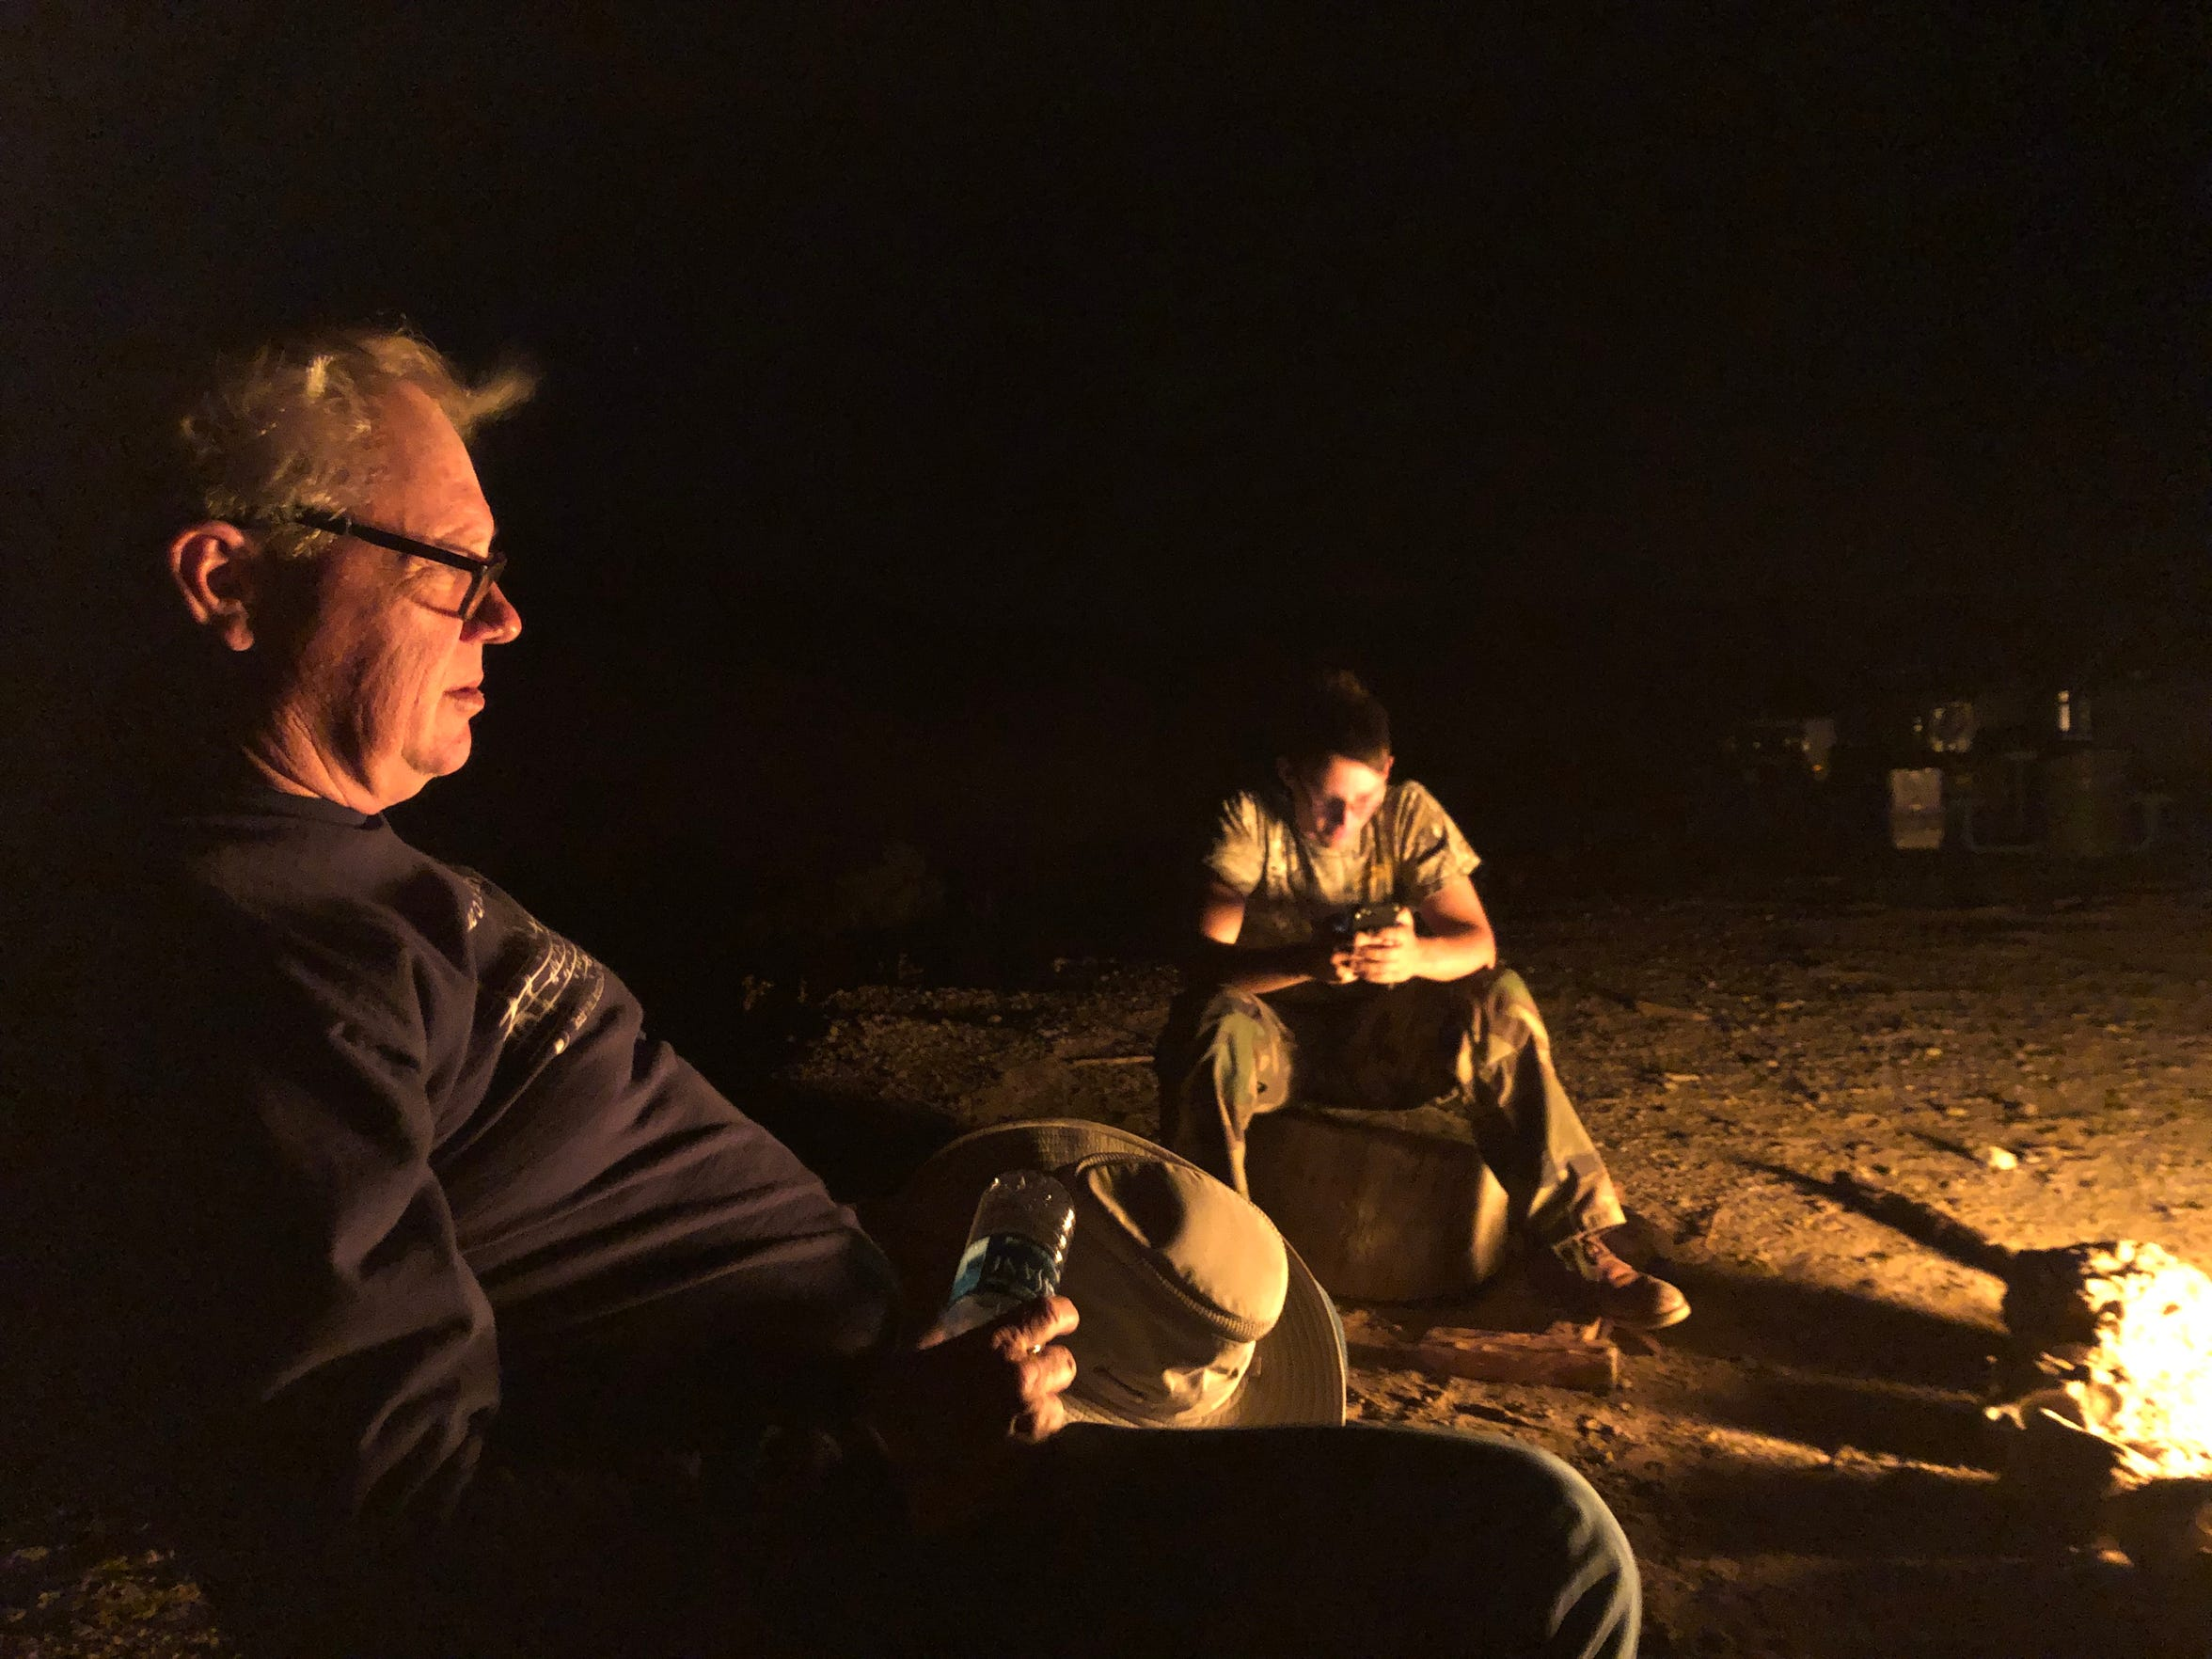 Cecil Pratt and his son, Caleb, sit by a campfire on the mountain. They slept on the mountain to be ready for sunrise.